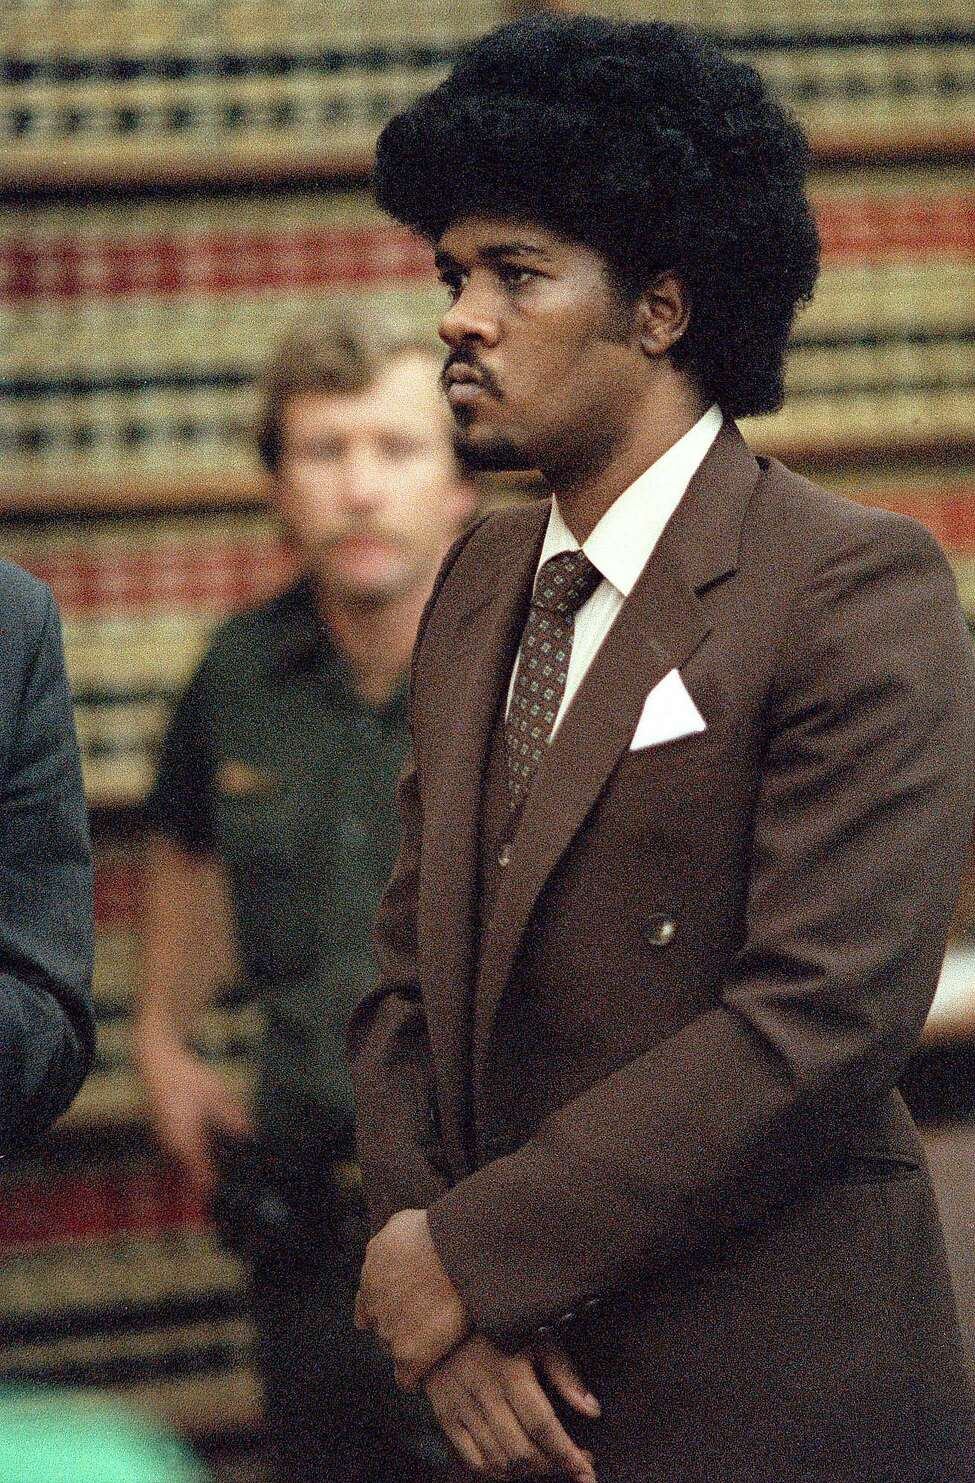 Convicted murder Kevin Cooper stands before a San Diego judge in this May 1985 file photo when he was sentenced to death for the 1983 slayings of three Chino Hills, Calif, family members and a friend.